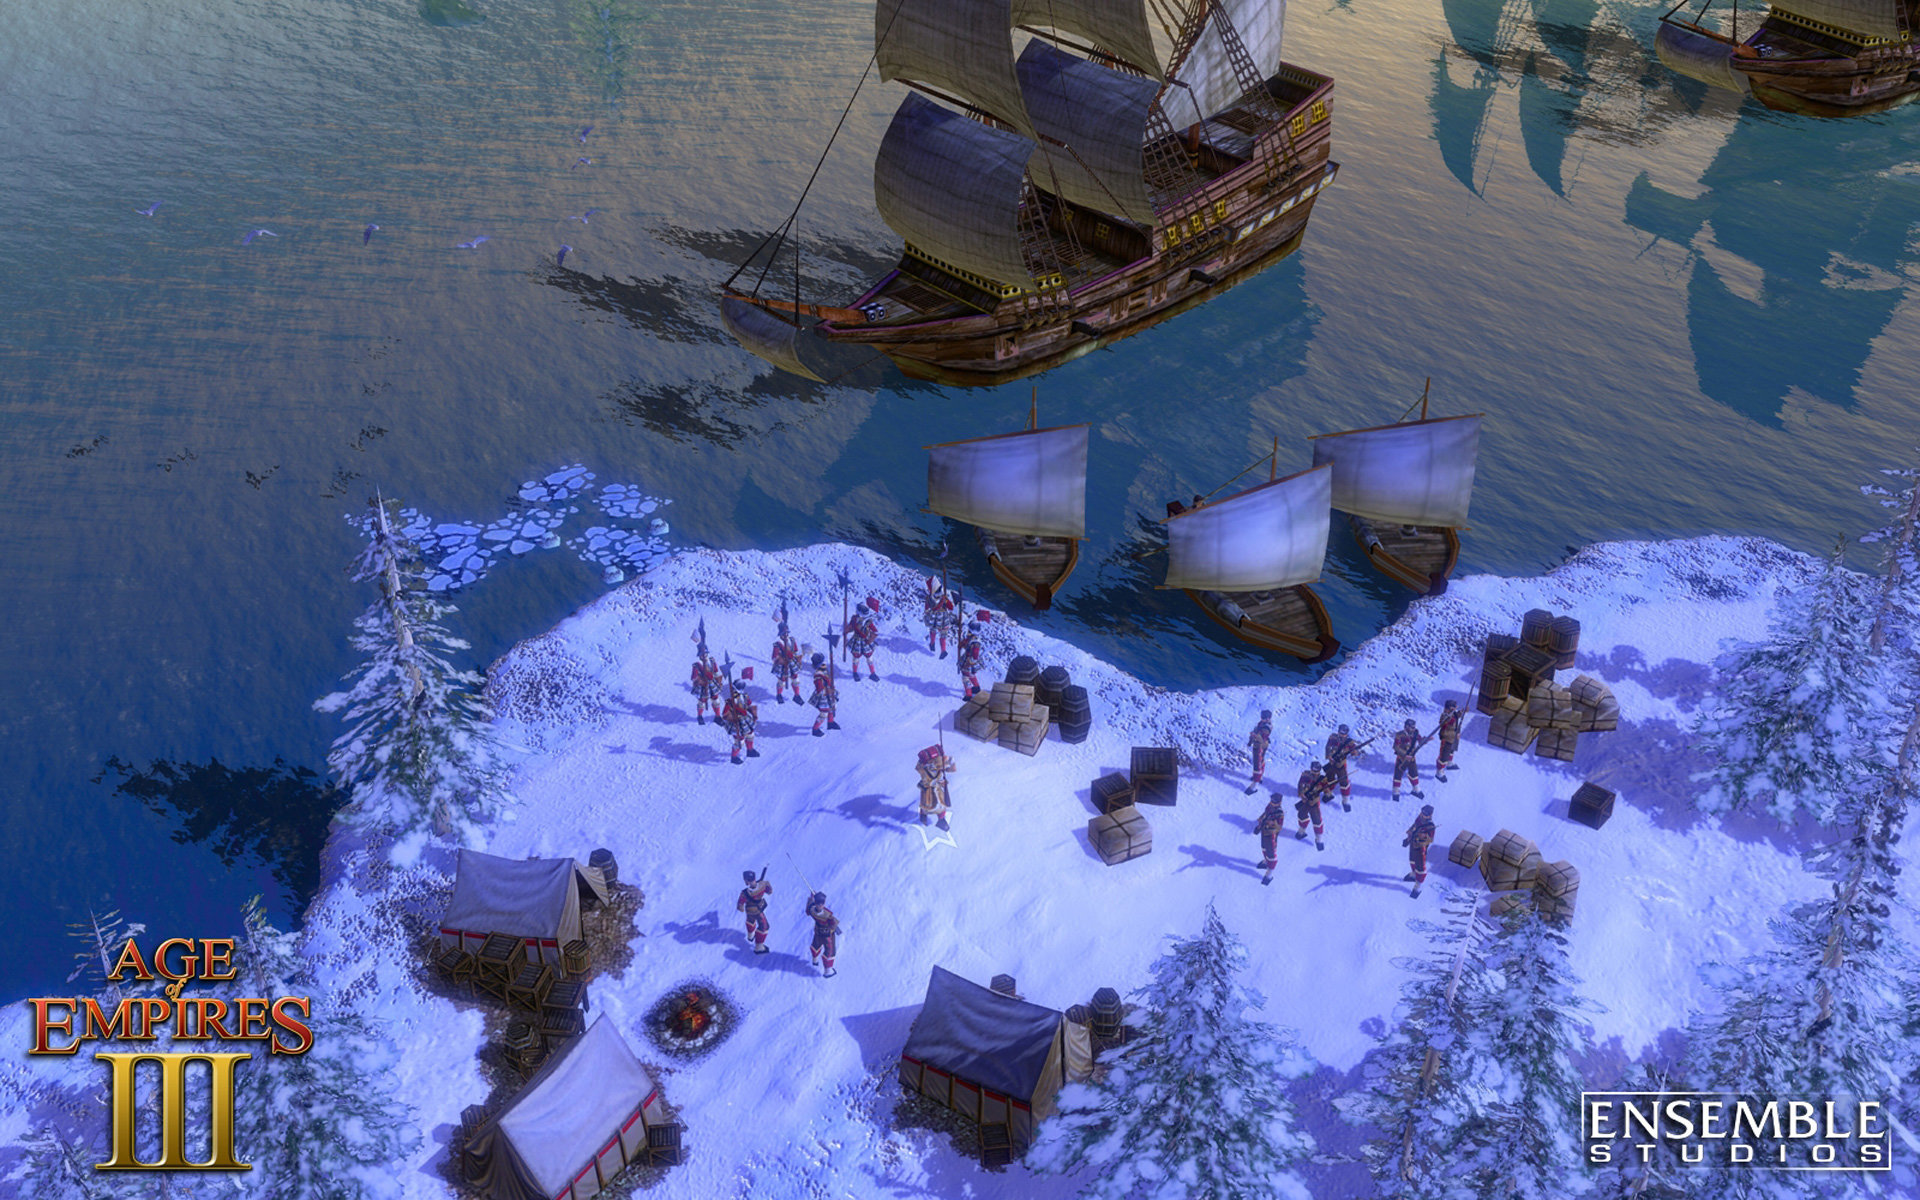 Age Of Empires 3 Wallpapers Hd For Desktop Backgrounds